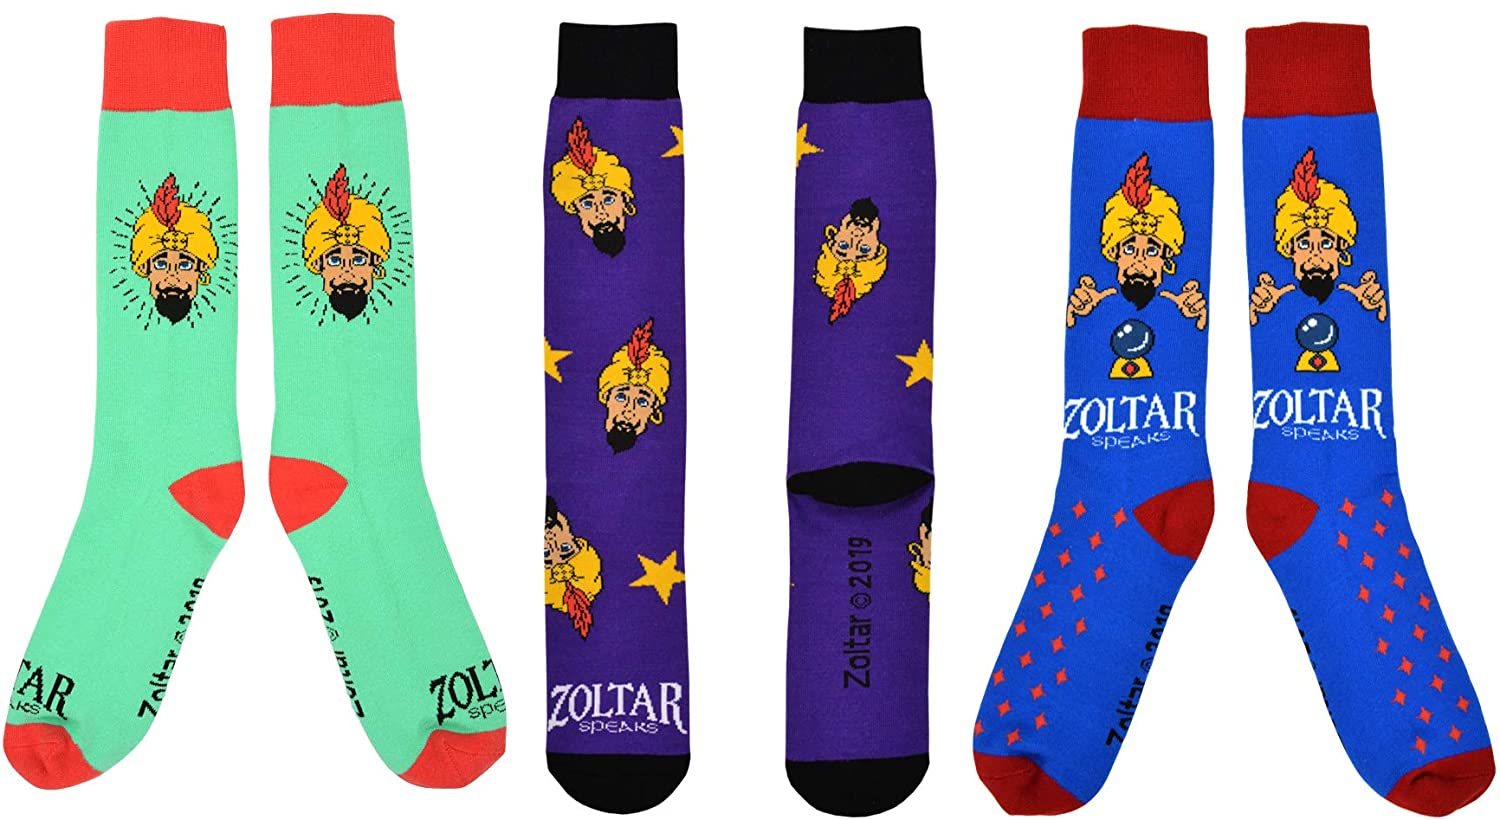 Men's Zoltar Colorful Funny Novelty Crazy Fun Crew Socks - Single or 3 Pair